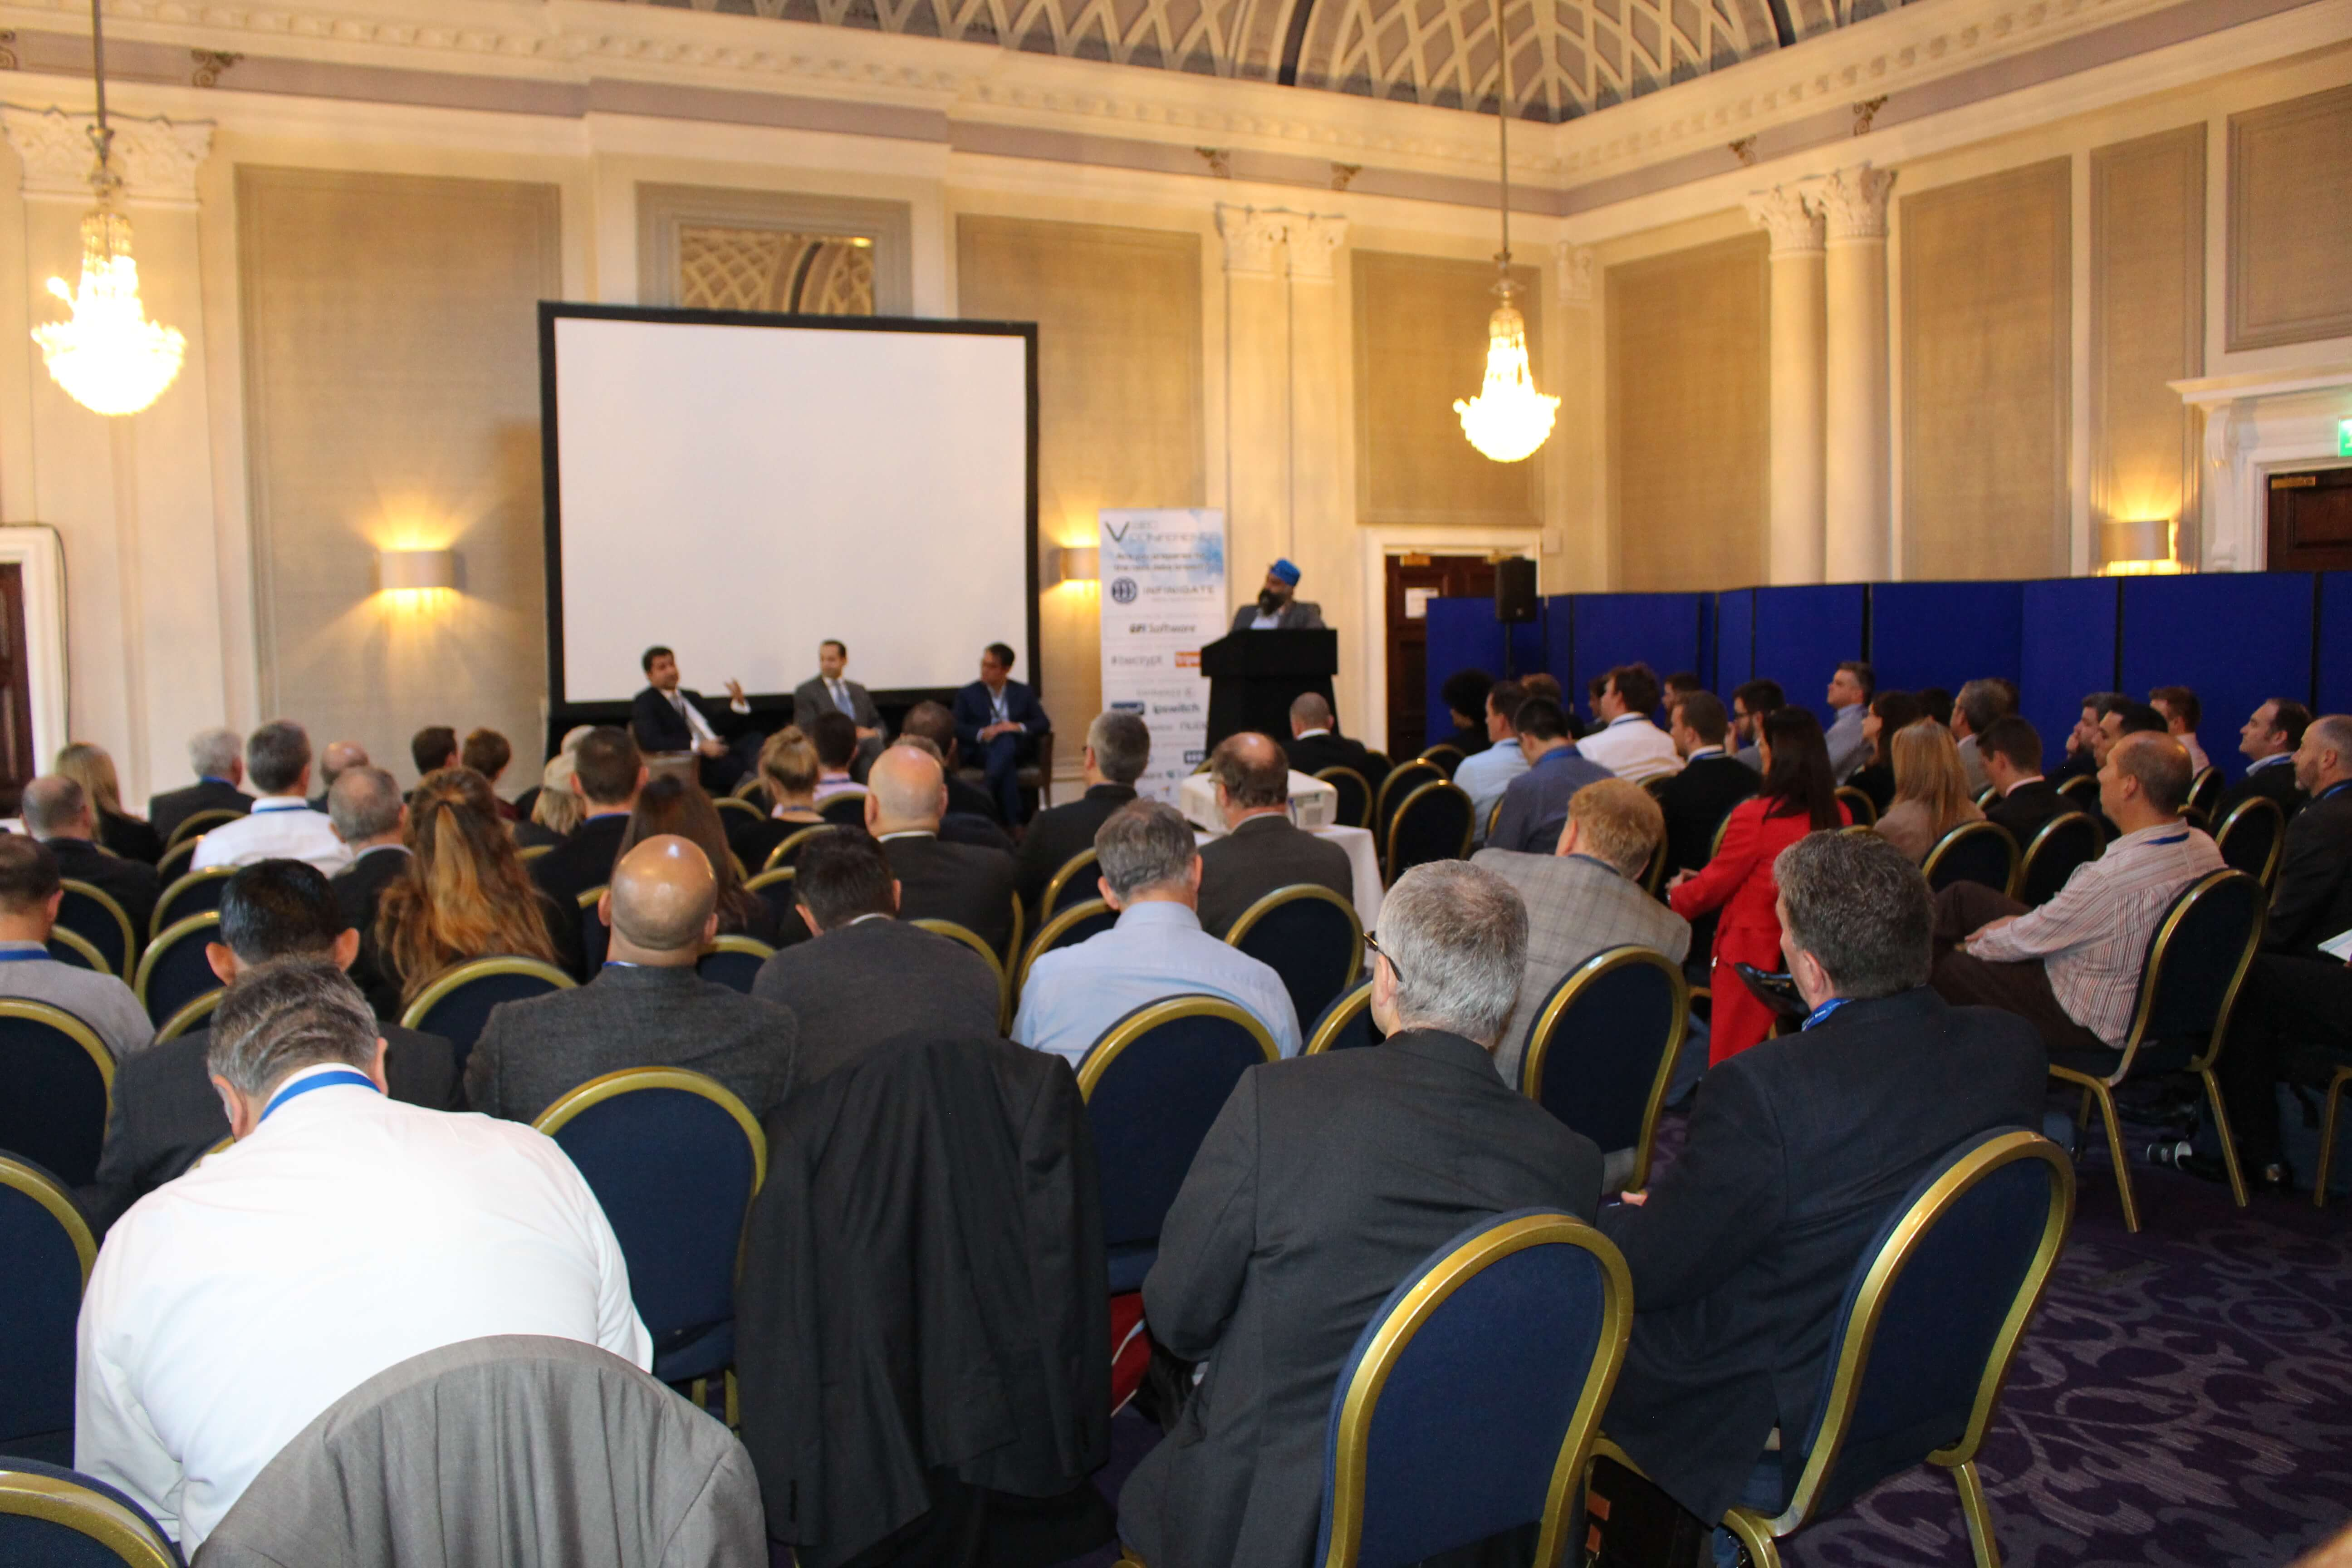 Amar Singh Participates at the V.SEC Conference in London